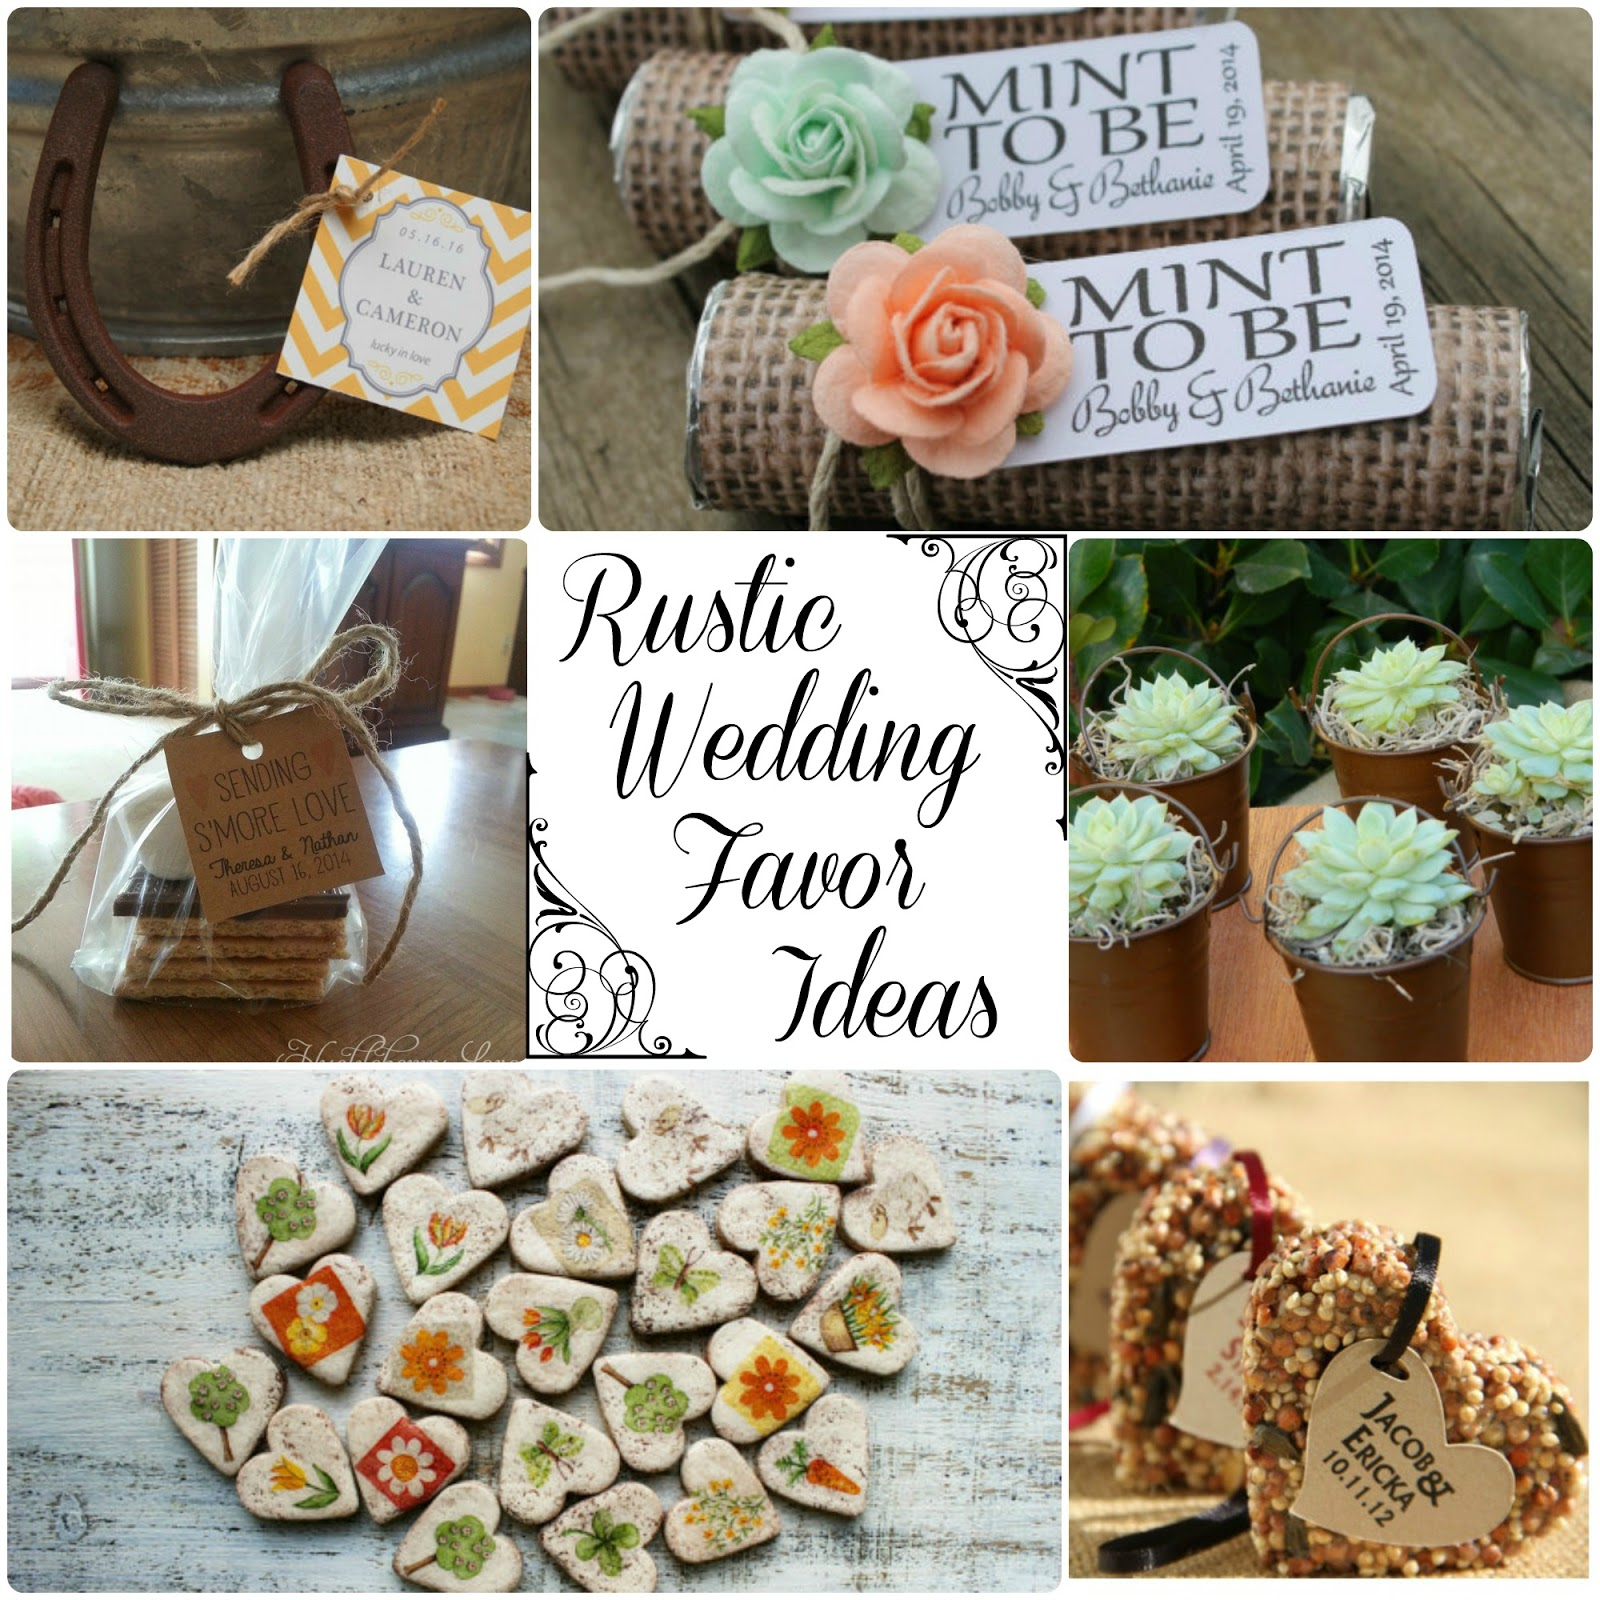 Rustic Wedding Favor Ideas Round Up